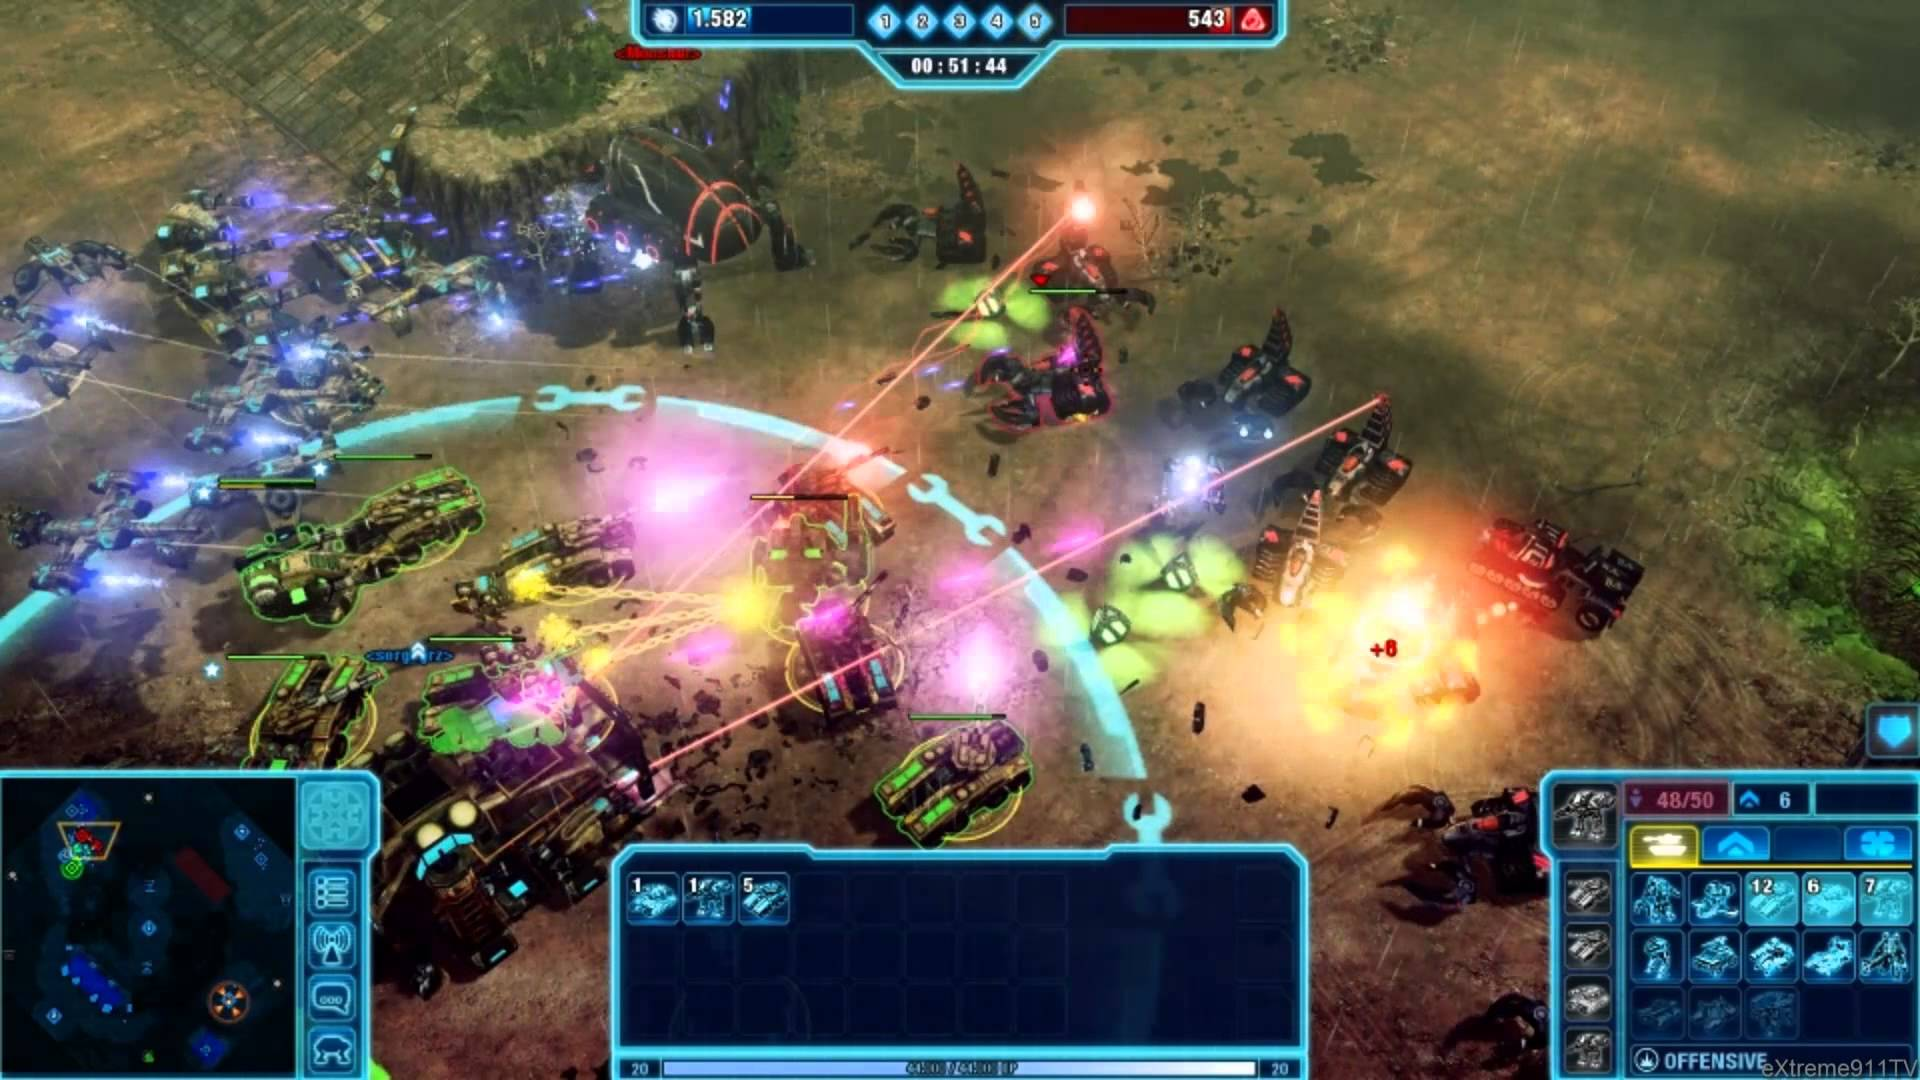 Echtzeit-Strategie, Command & Conquer 4: Tiberian Twilight © Electronic Arts